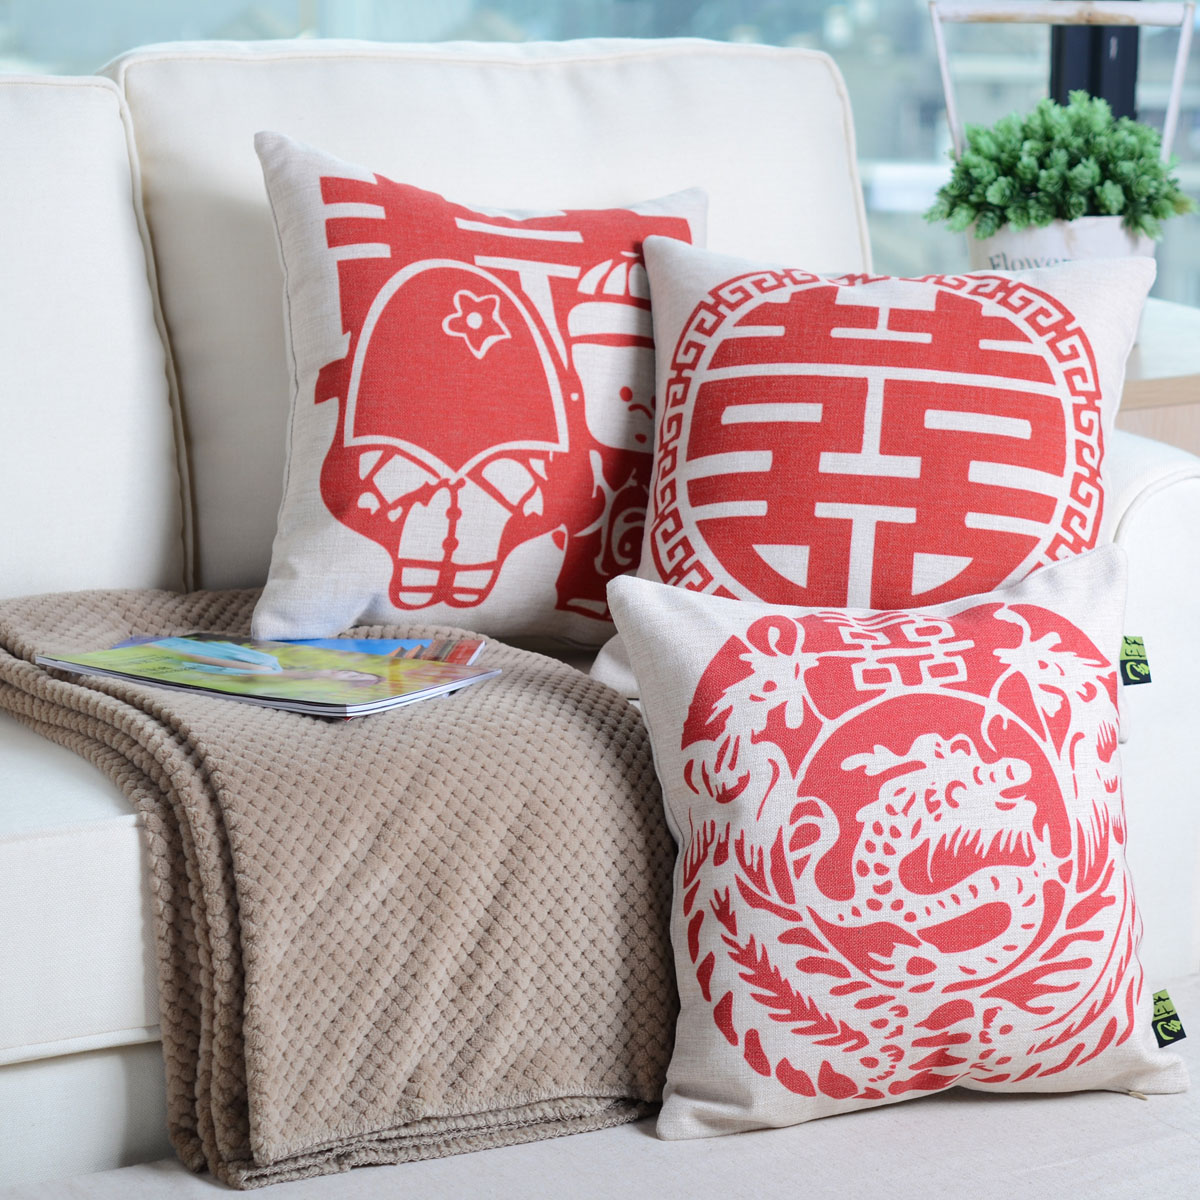 China Wedding Gift Pillow, China Wedding Gift Pillow Shopping Guide ...